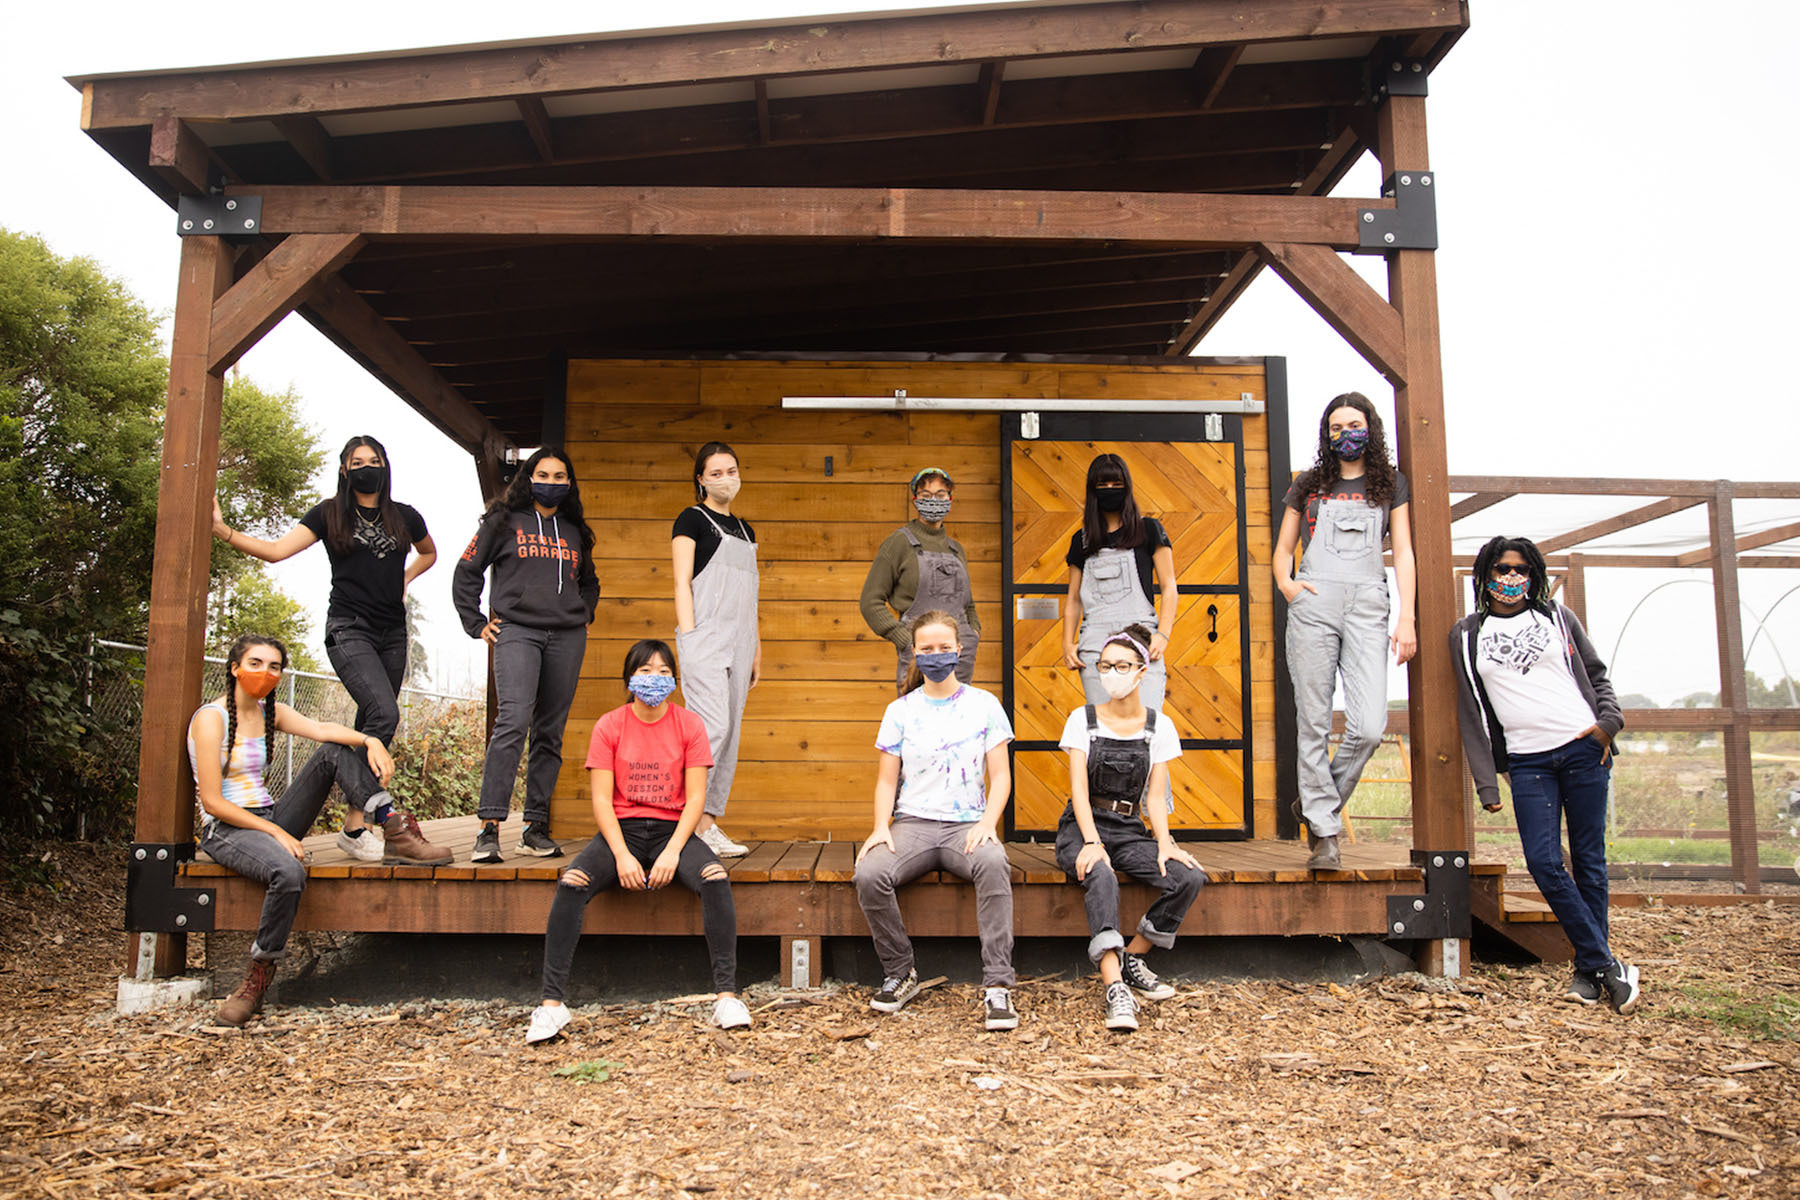 Can a chicken coop be an act of community solidarity? This team of teenage female builders certainly thinks so.